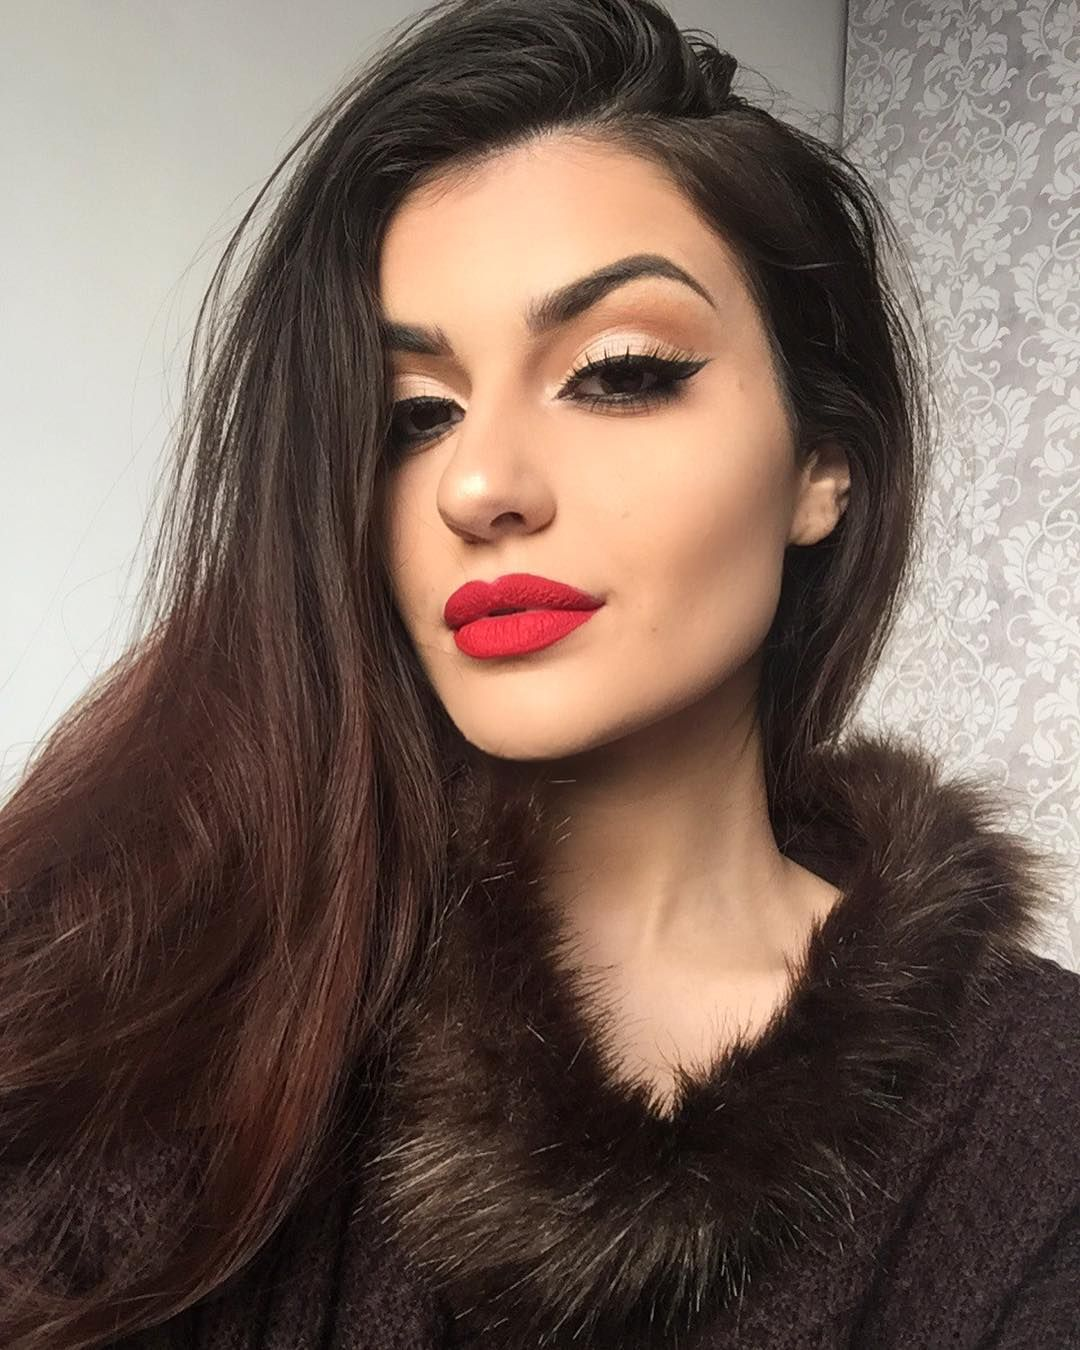 Pin by Shantall Alam on portraits in 2019 Red lips